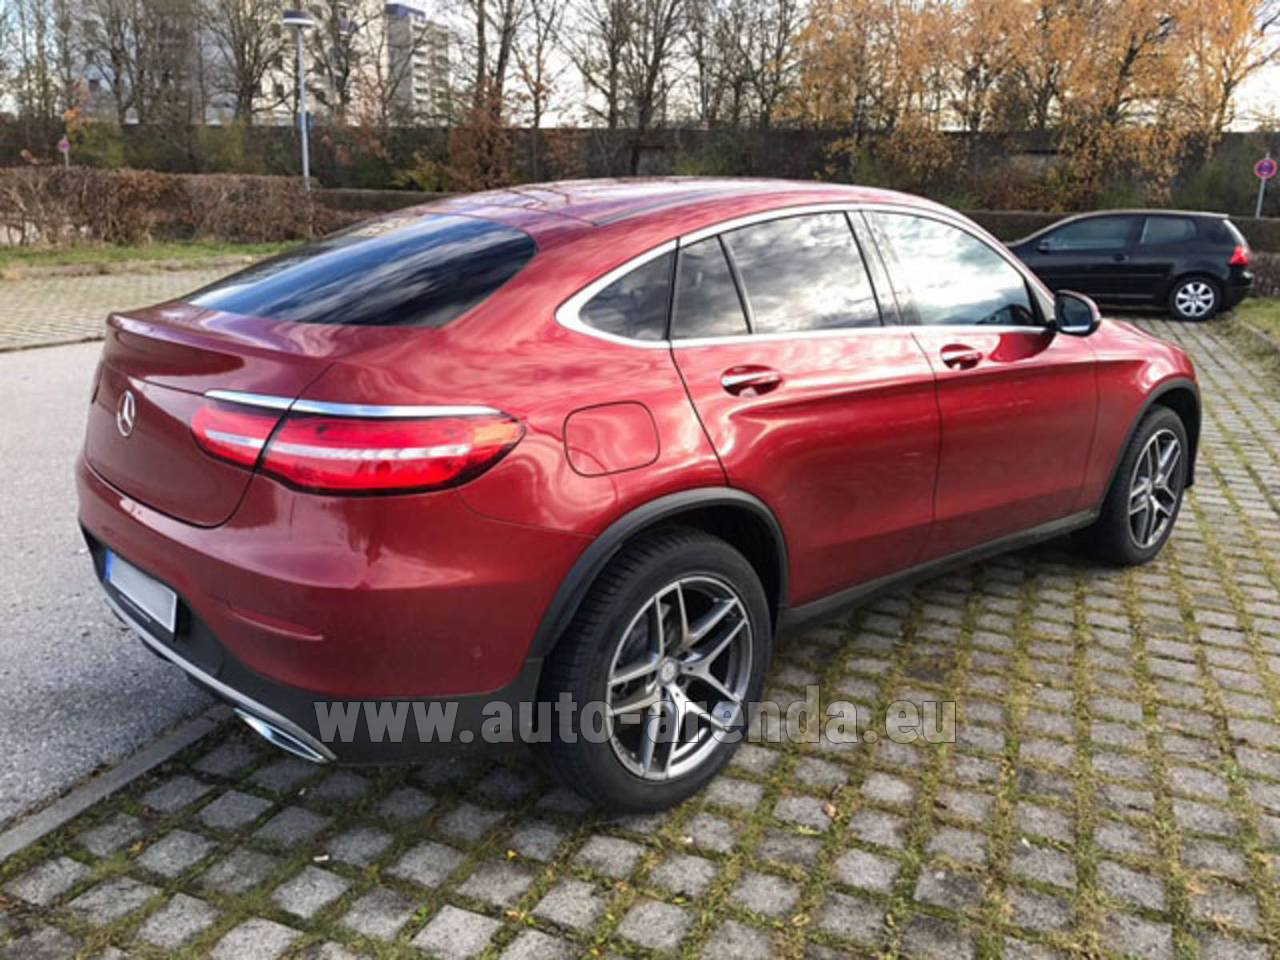 Monte carlo mercedes benz glc coupe rental for Mercedes benz rental prices